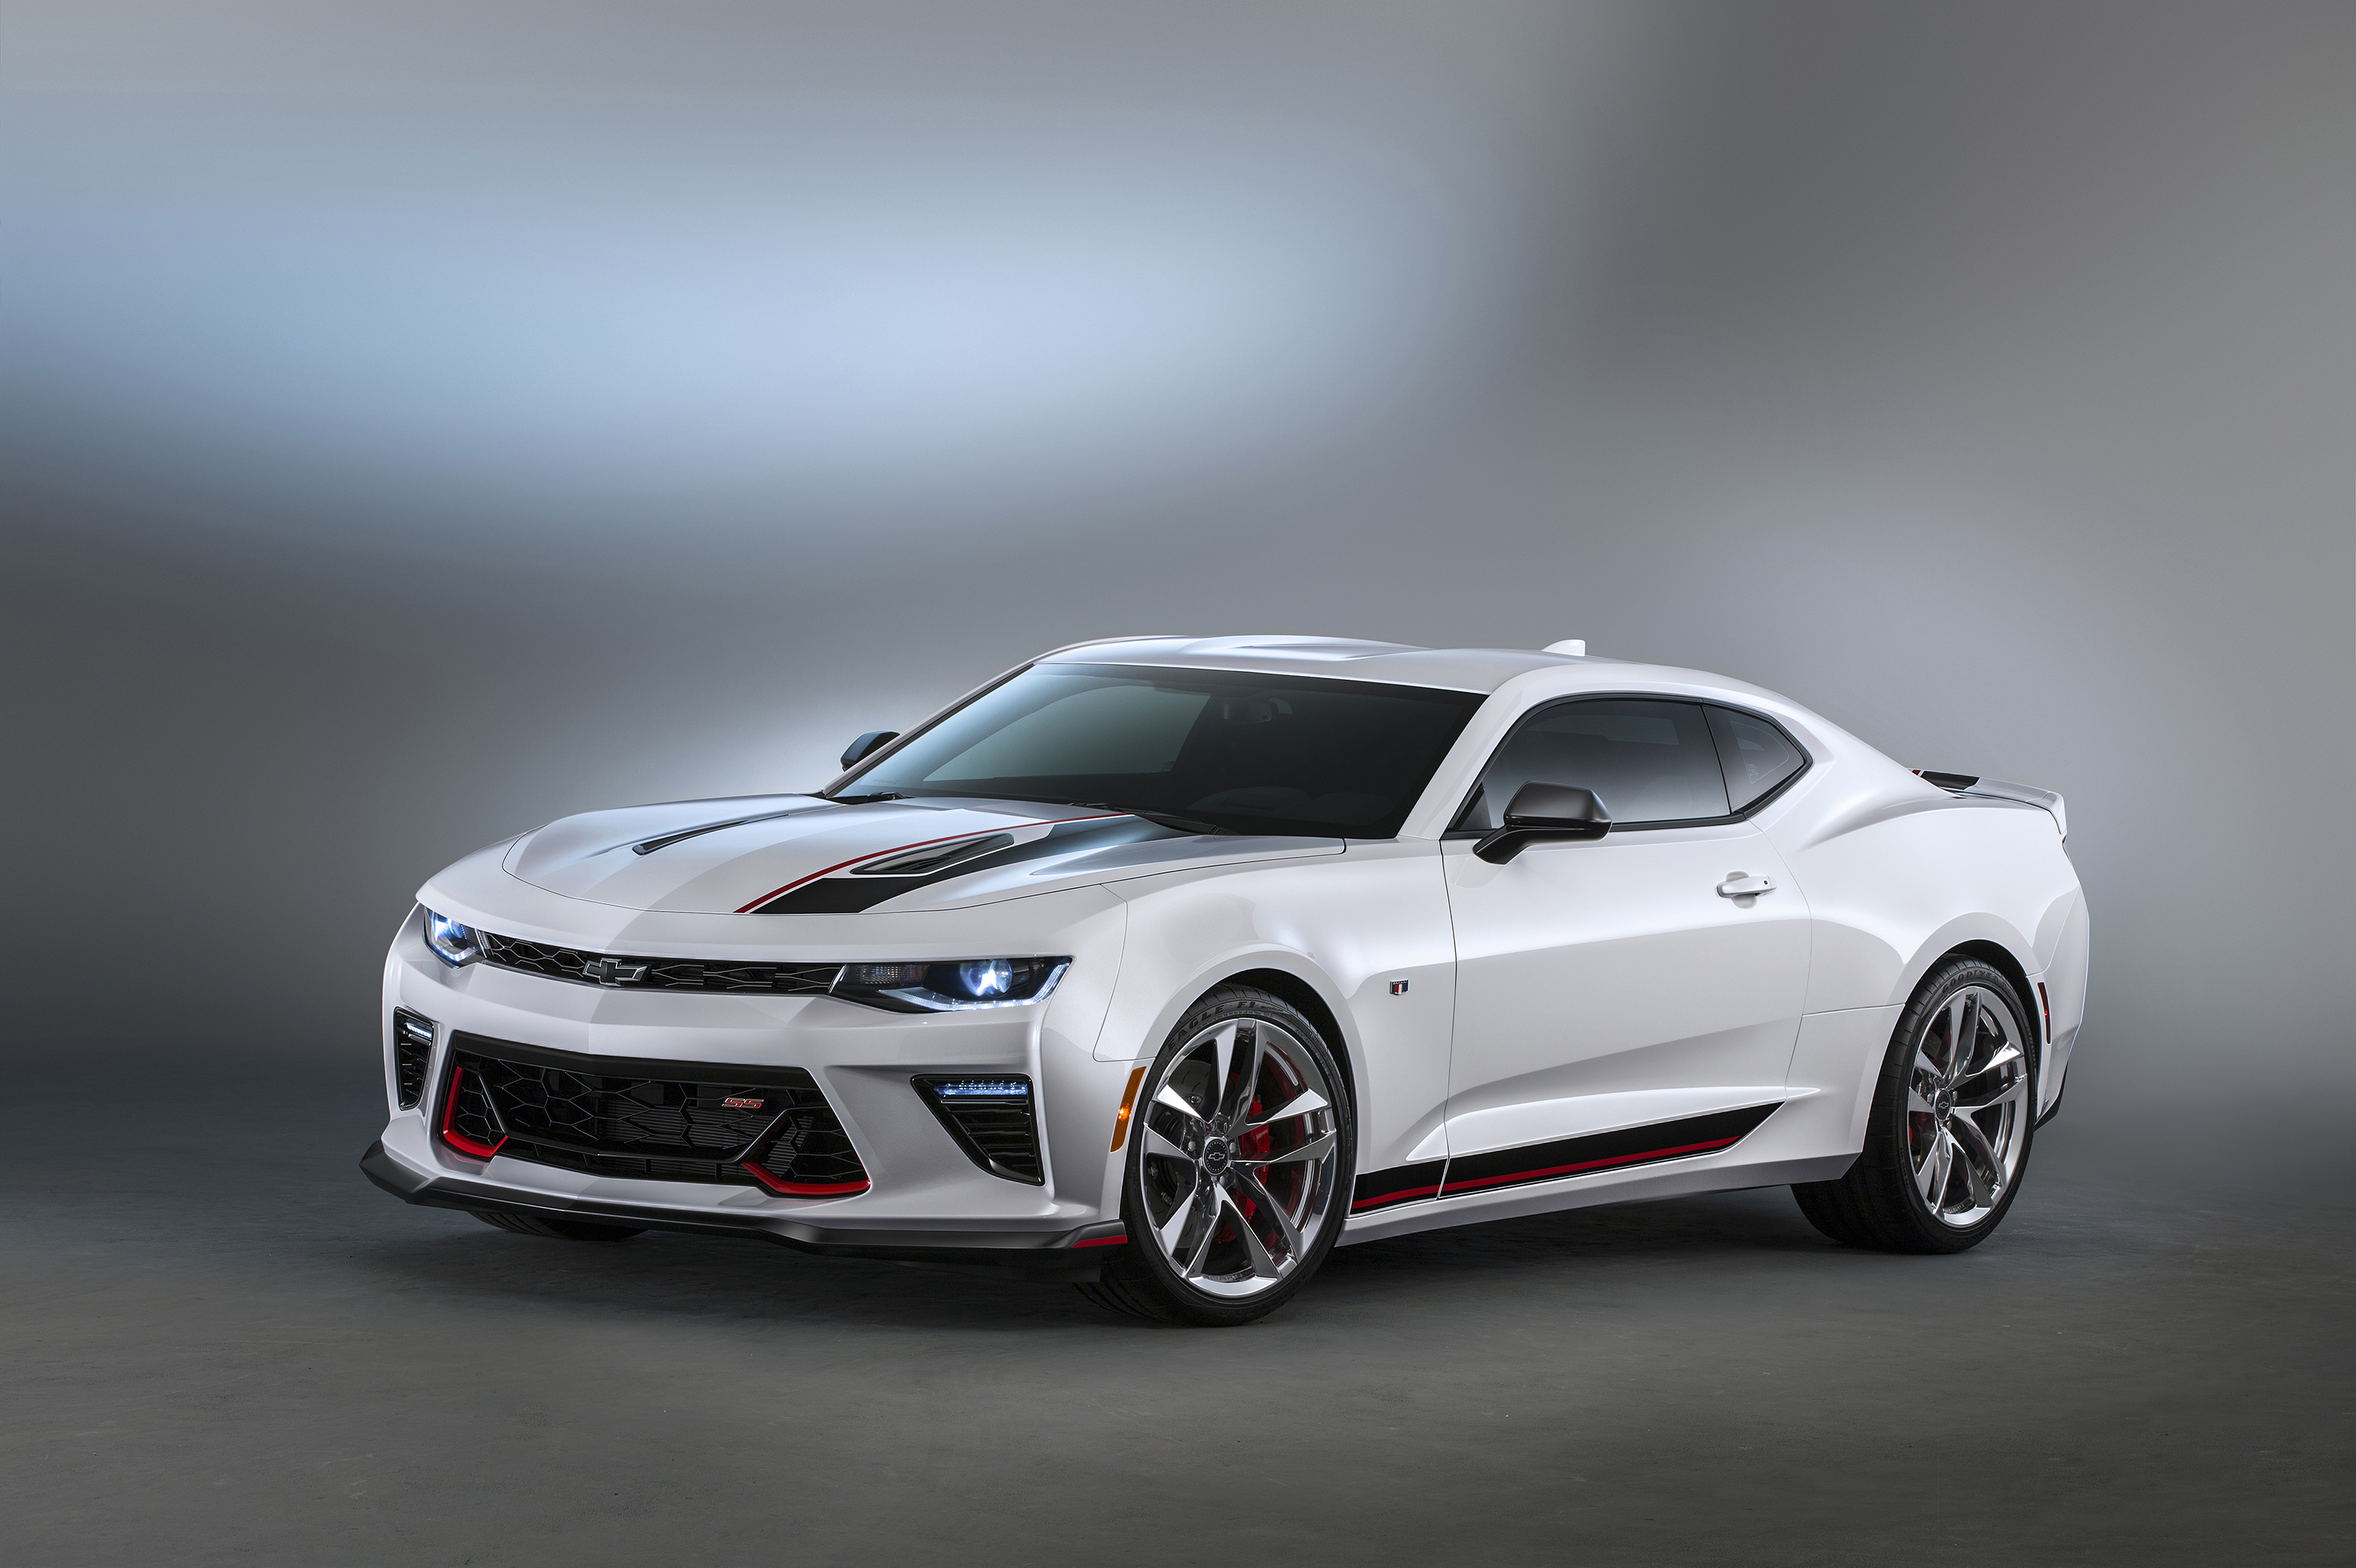 Camaro Chevrolet Performance concept – The Summit White Camaro SS features new red accents, custom 20-inch forged aluminum wheels, lowered suspension and performance upgrades.